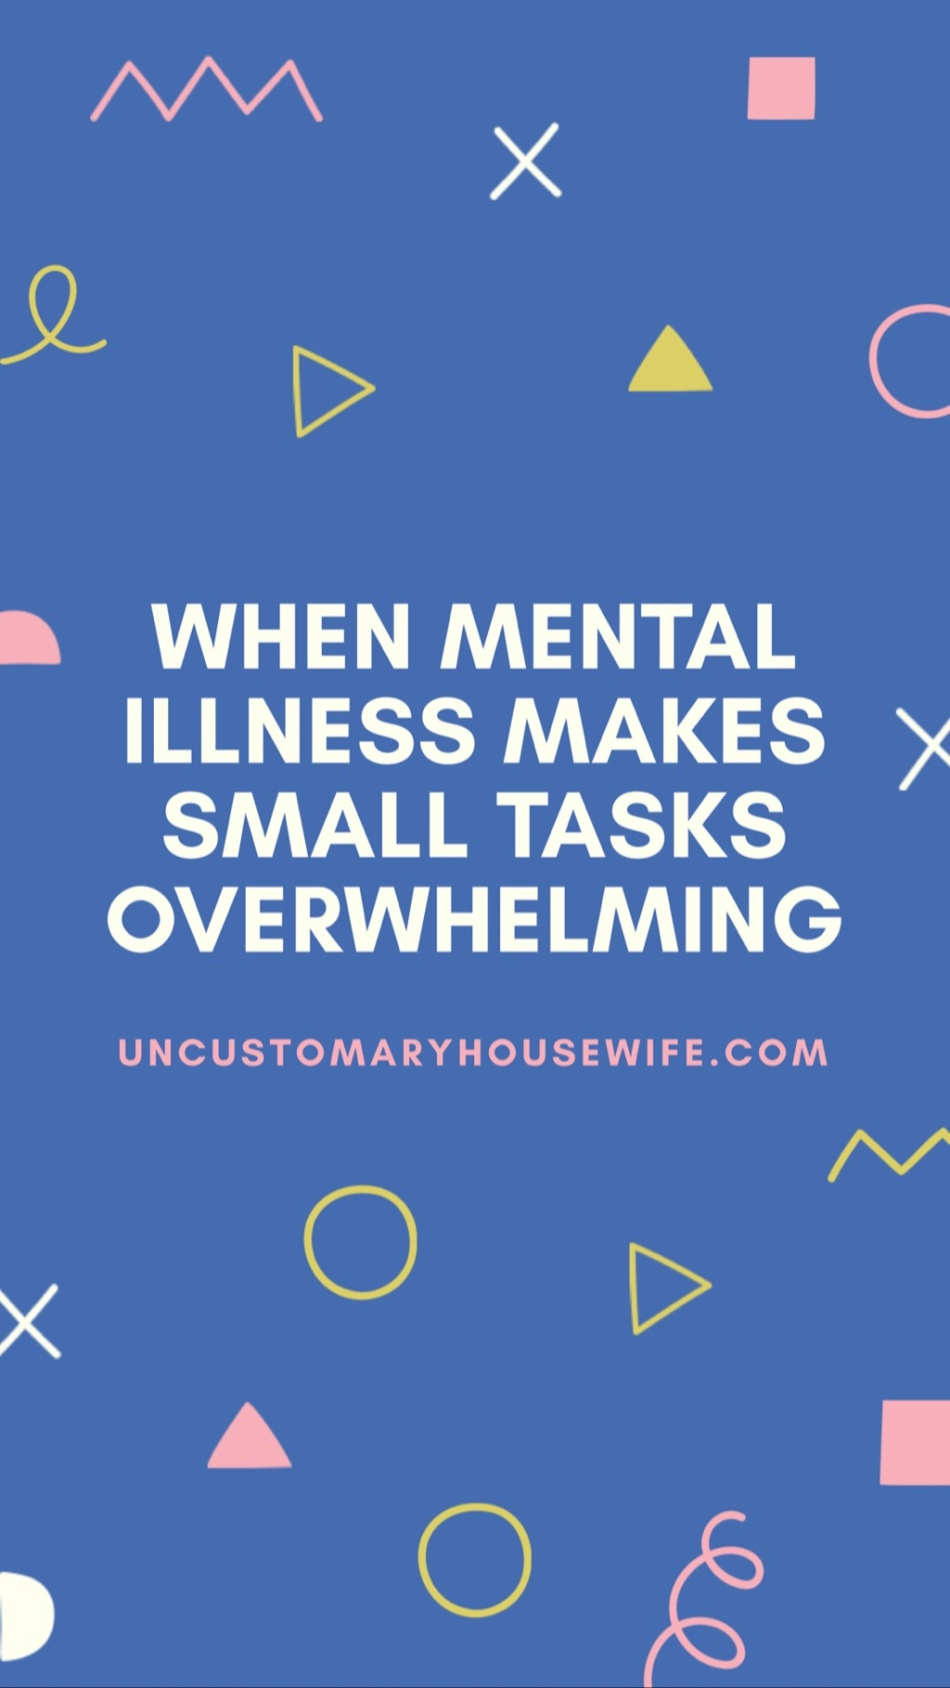 When Mental Illness Makes Small Tasks Overwhelming - Uncustomary Housewife Blog